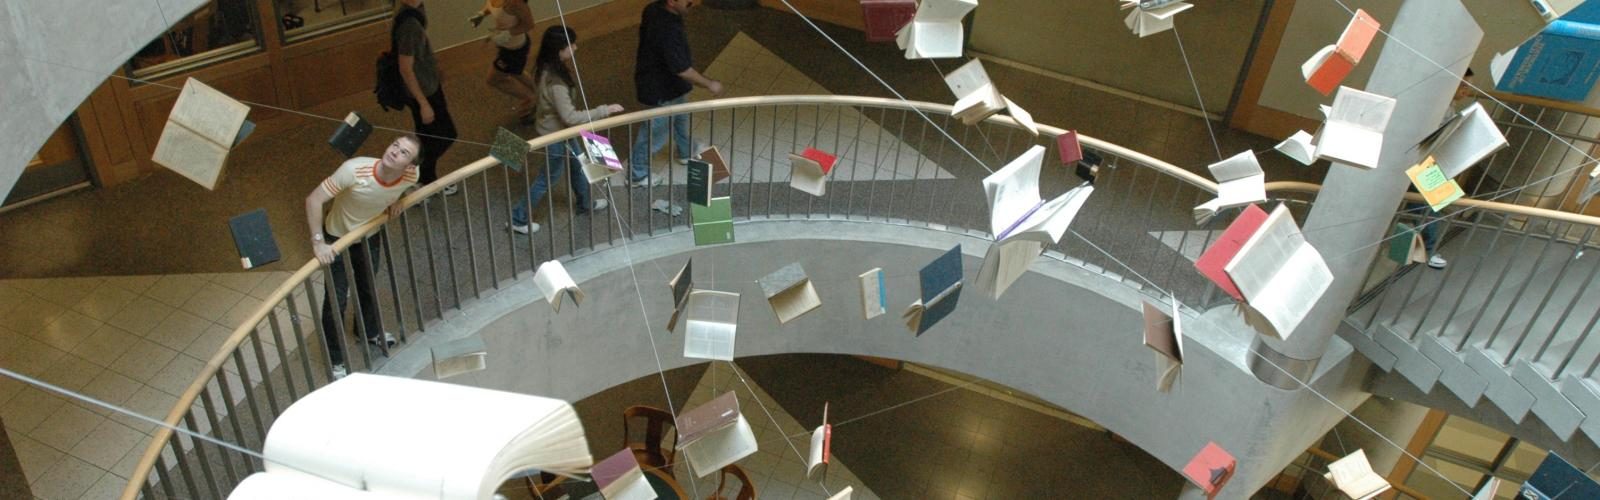 Book installation at library